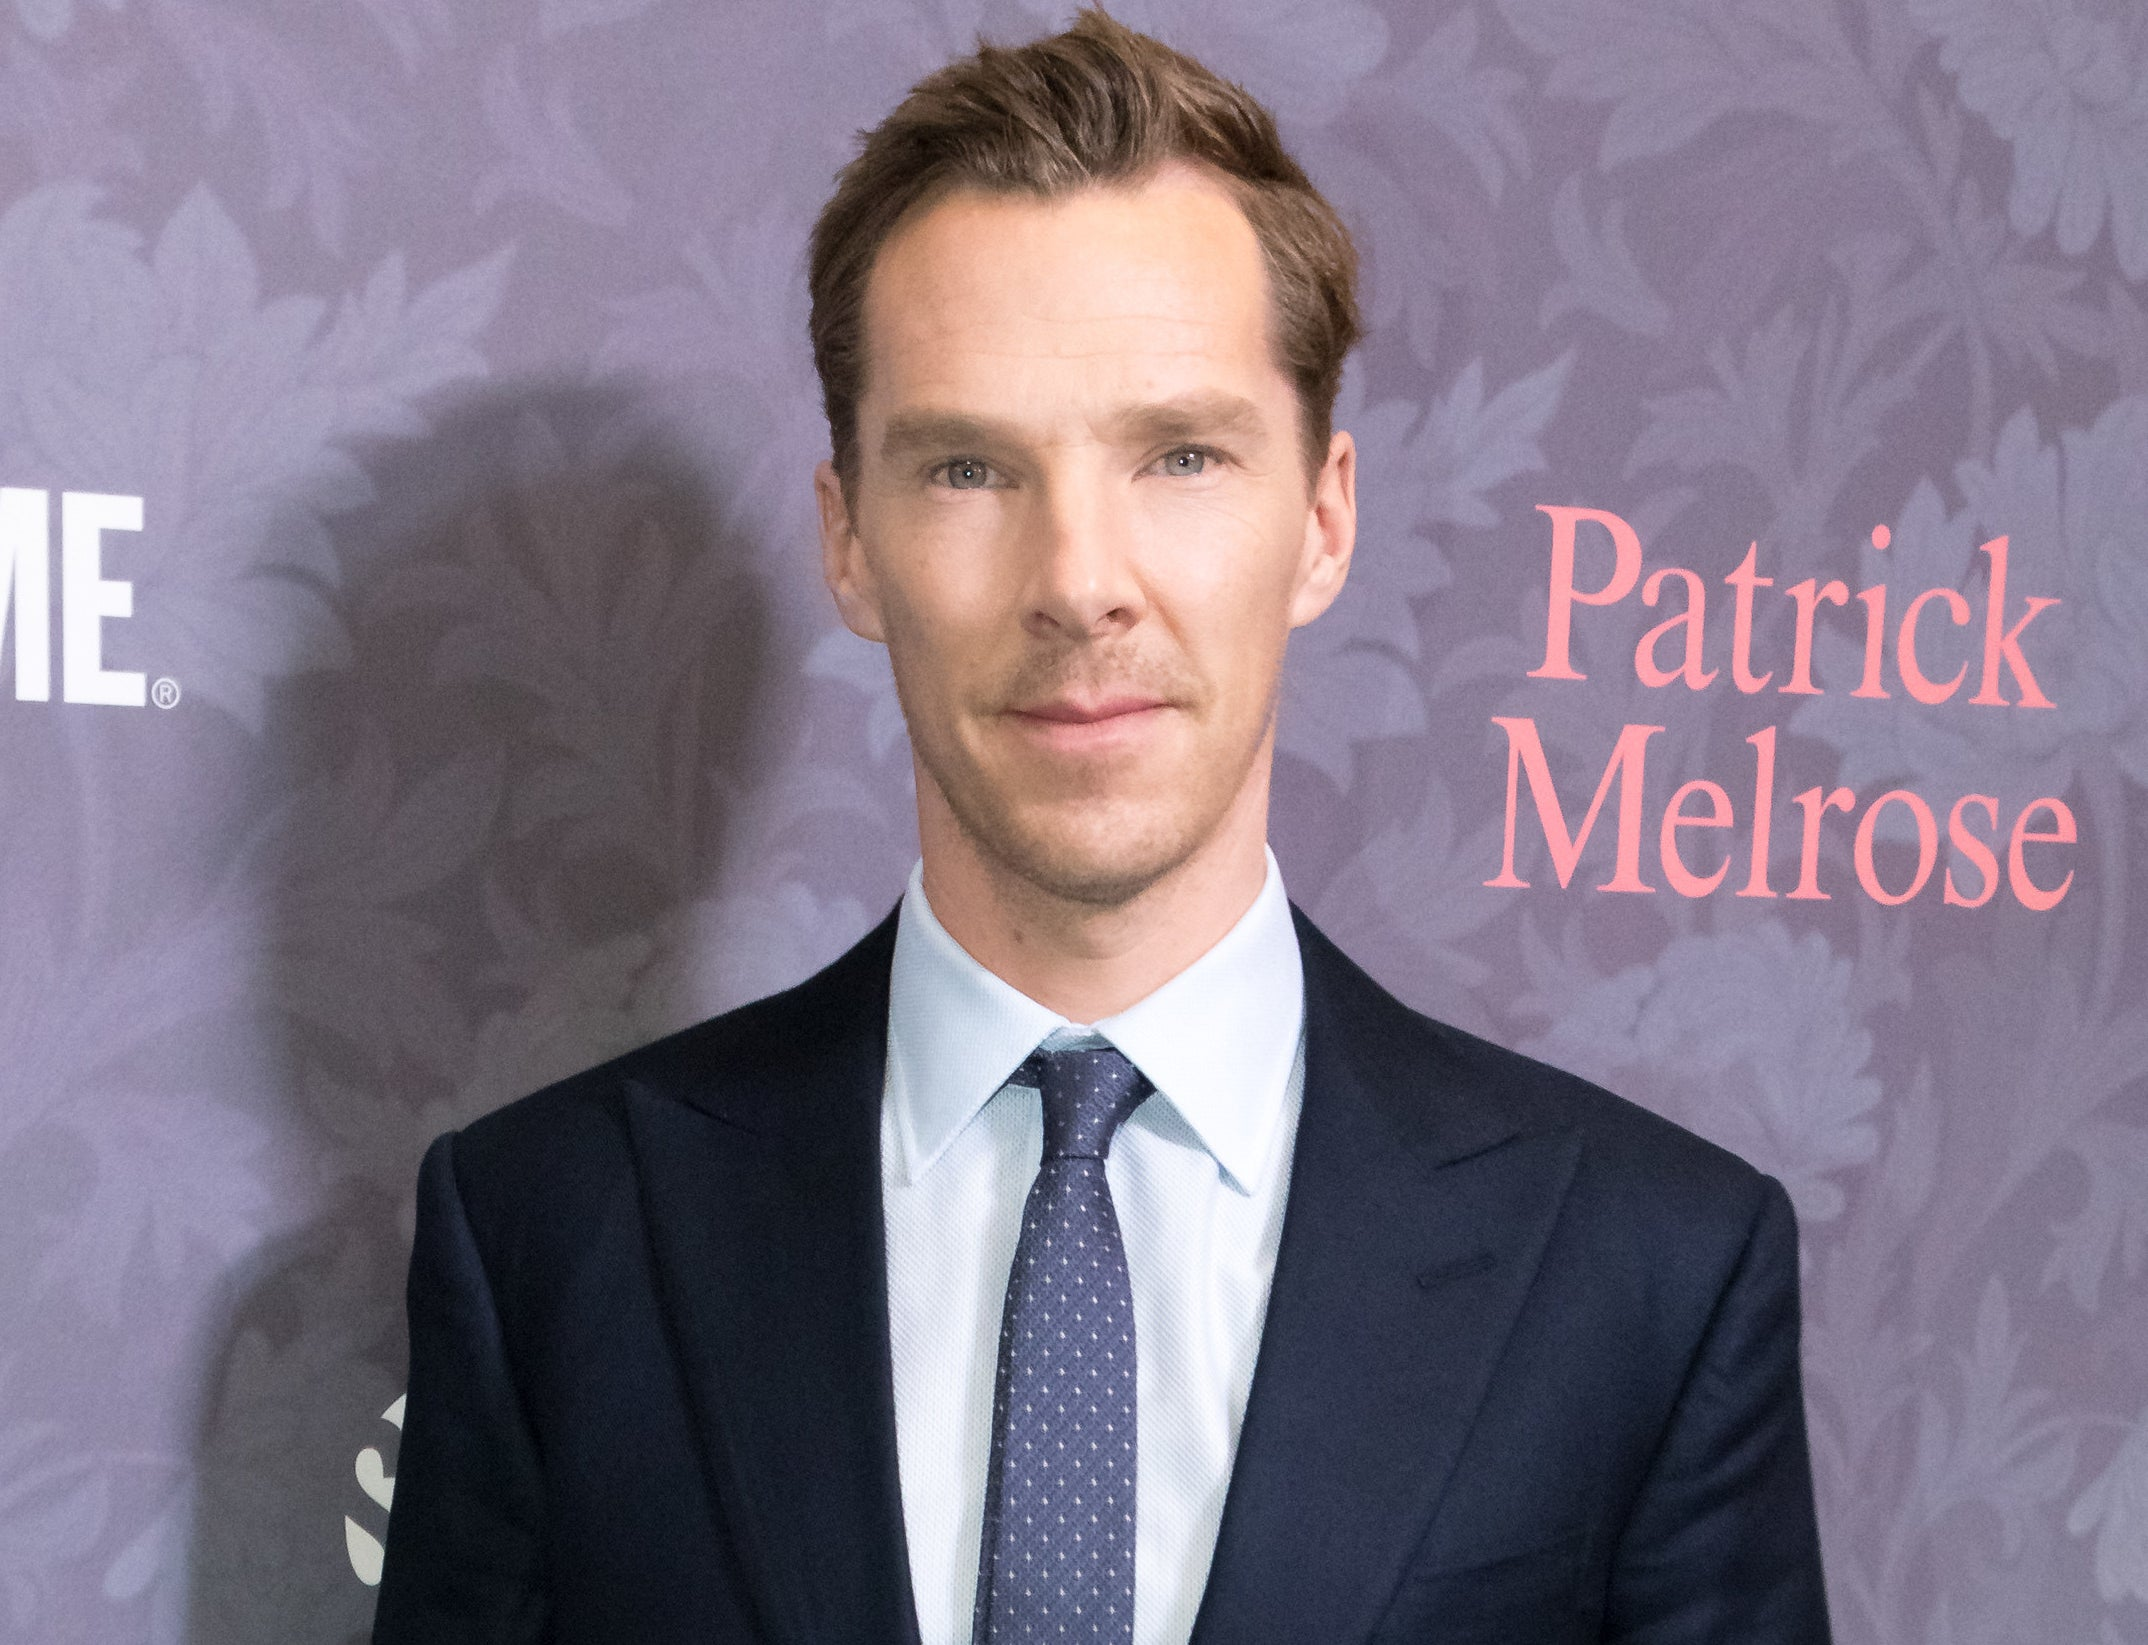 Benedict wears a suit with a navy tie to an event